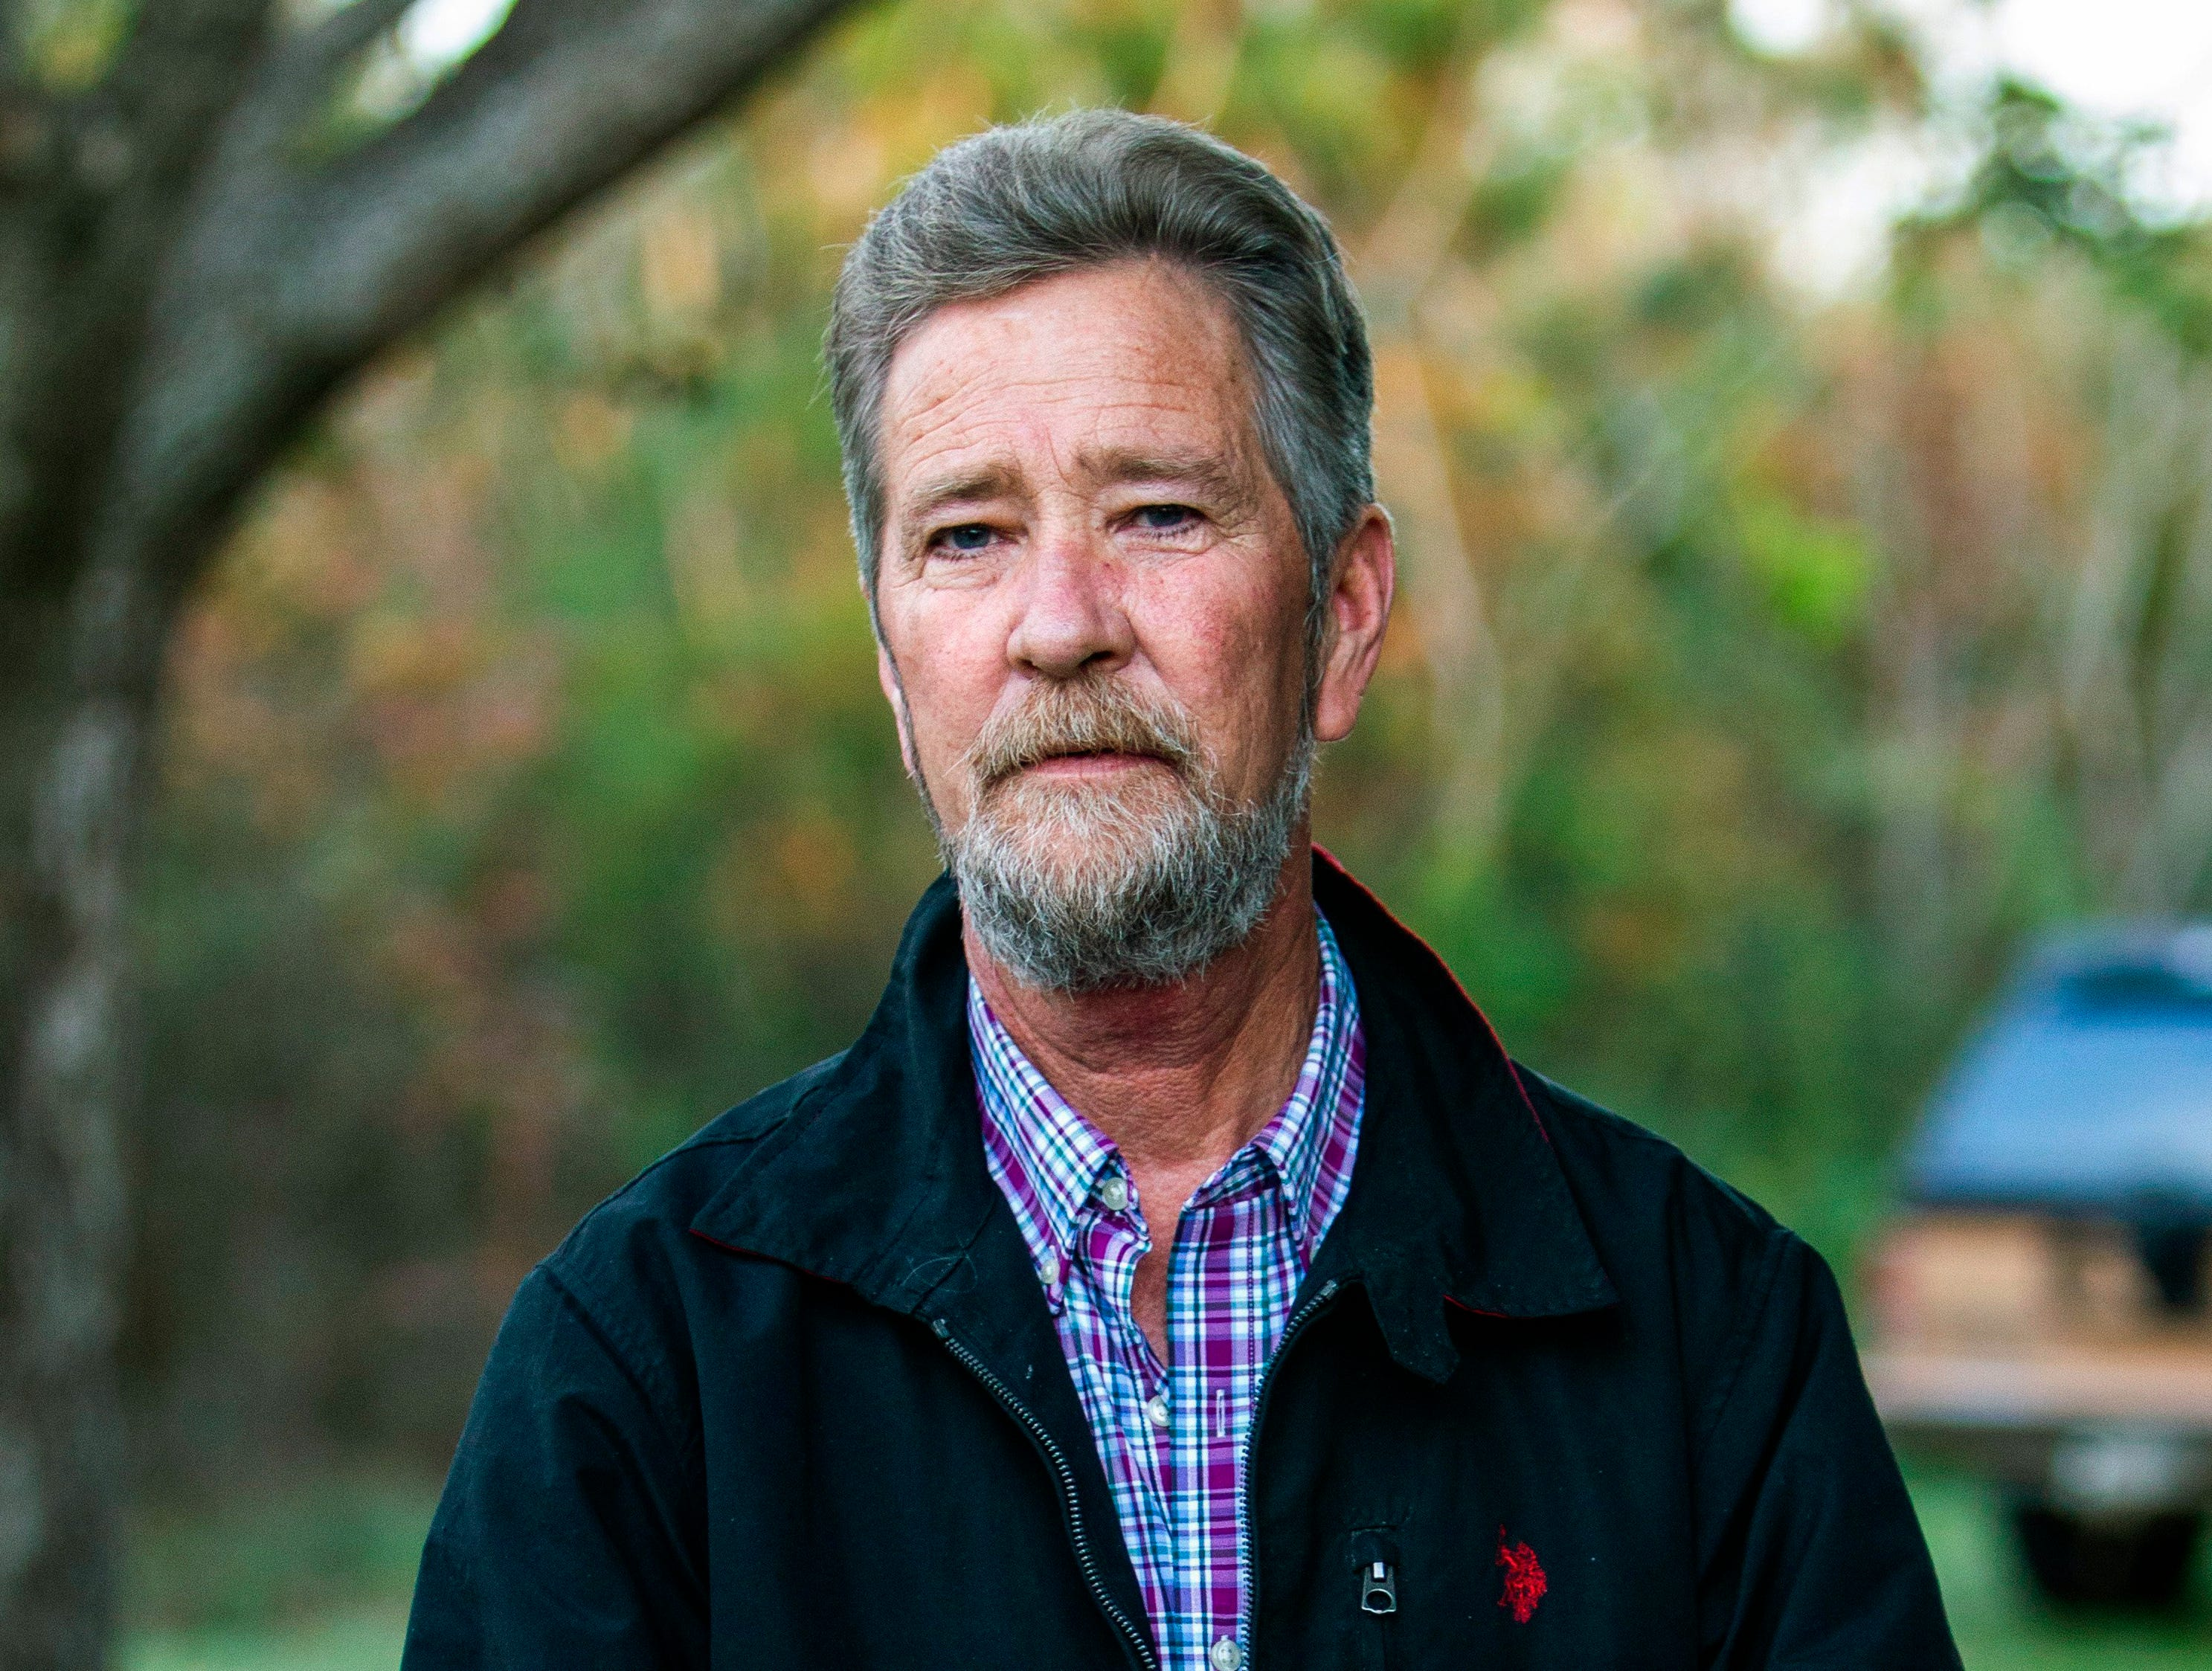 Leslie McCrae Dowless Jr., a North Carolina political operative, was at the center of a ballot fraud scandal and faces criminal charges for his activities in the 2016 elections and the Republican primary in 2018.